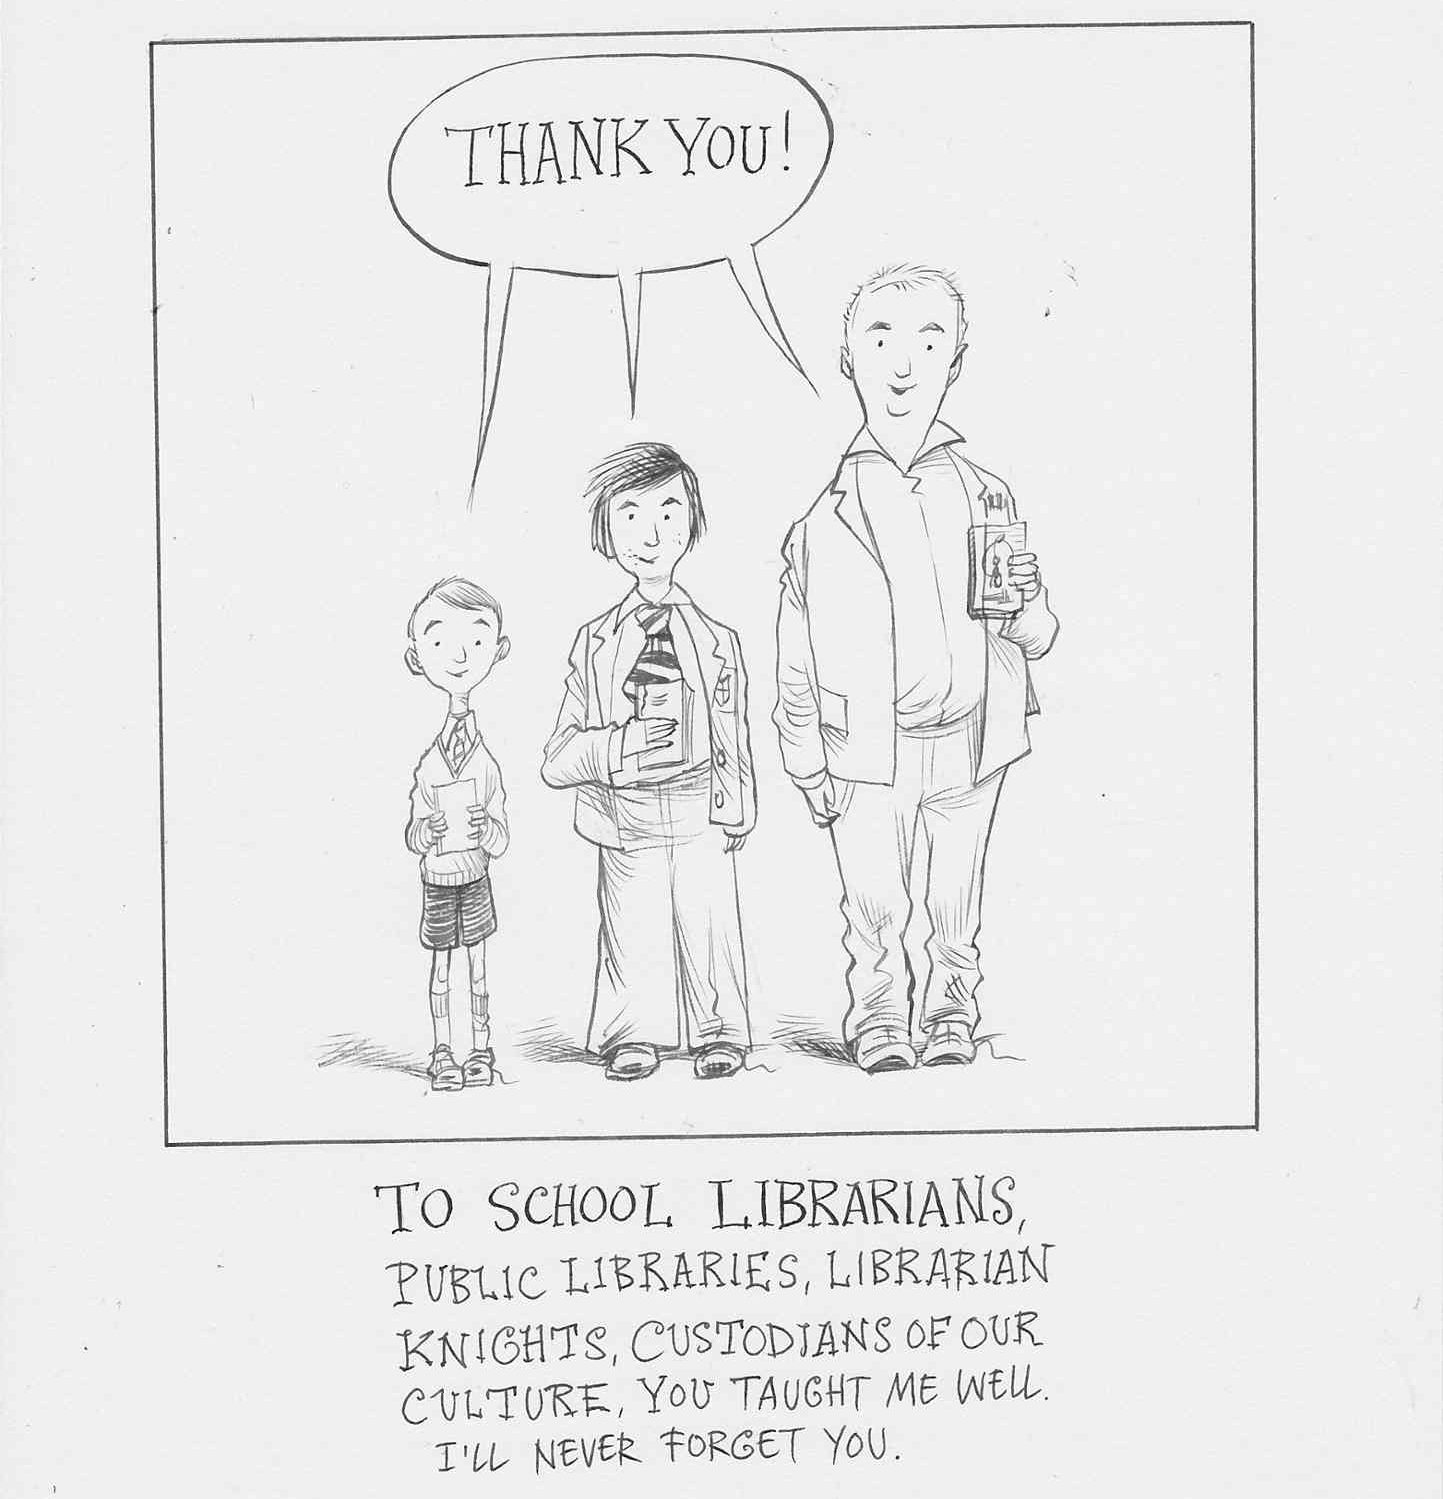 To school librarians, public libraries, librarian knights, custodians of our culture, you taught me well. I'll never forget you.